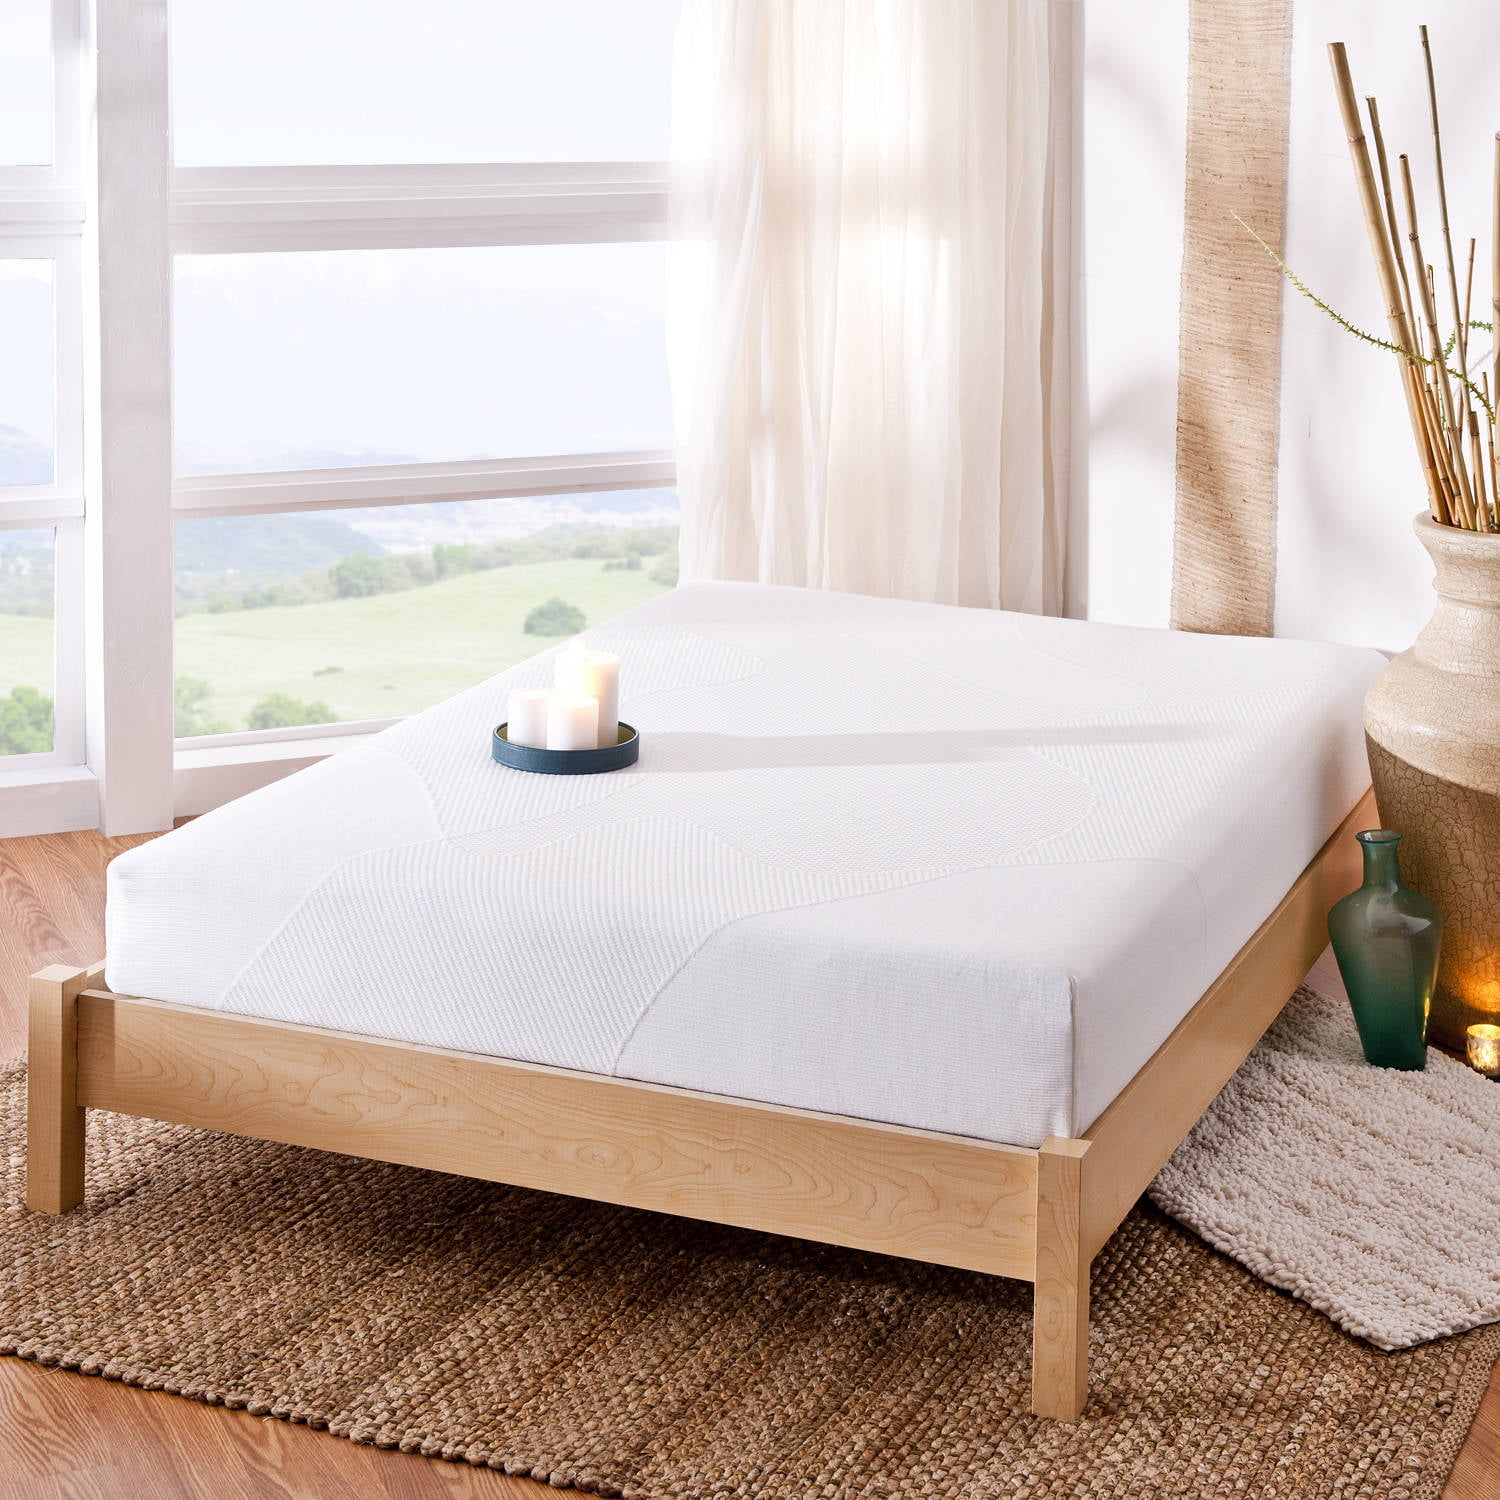 Spa Sensations 8 Quot Memory Foam Mattress Full Size Ebay